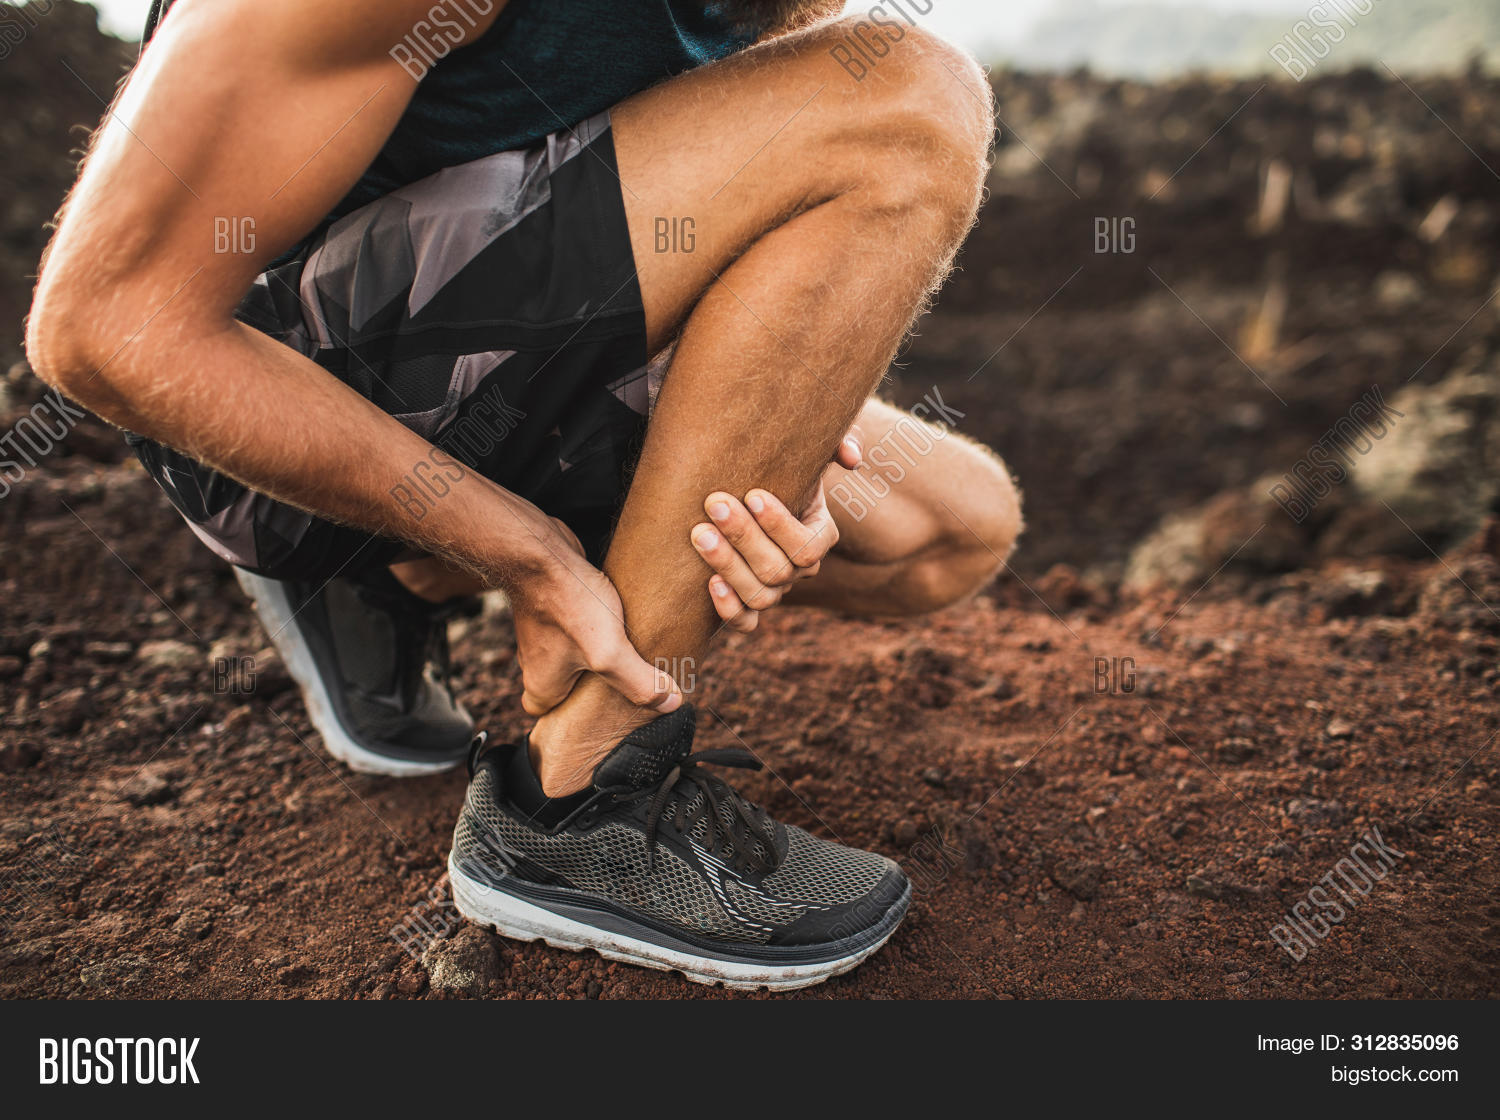 Achilles,accident,ache,active,adult,ahill,ahillus,ankle,athlete,athletic,body,bone,calf,contusion,endurance,fit,fitness,health,heel,hurt,inflammation,injured,injury,jogger,jogging,knee,leg,ligament,male,man,meniscus,motion,muscle,musculature,outdoor,pain,people,physical,recreation,run,runner,shin,spasm,sport,sprain,stress,tendon,tendonitis,training,workout